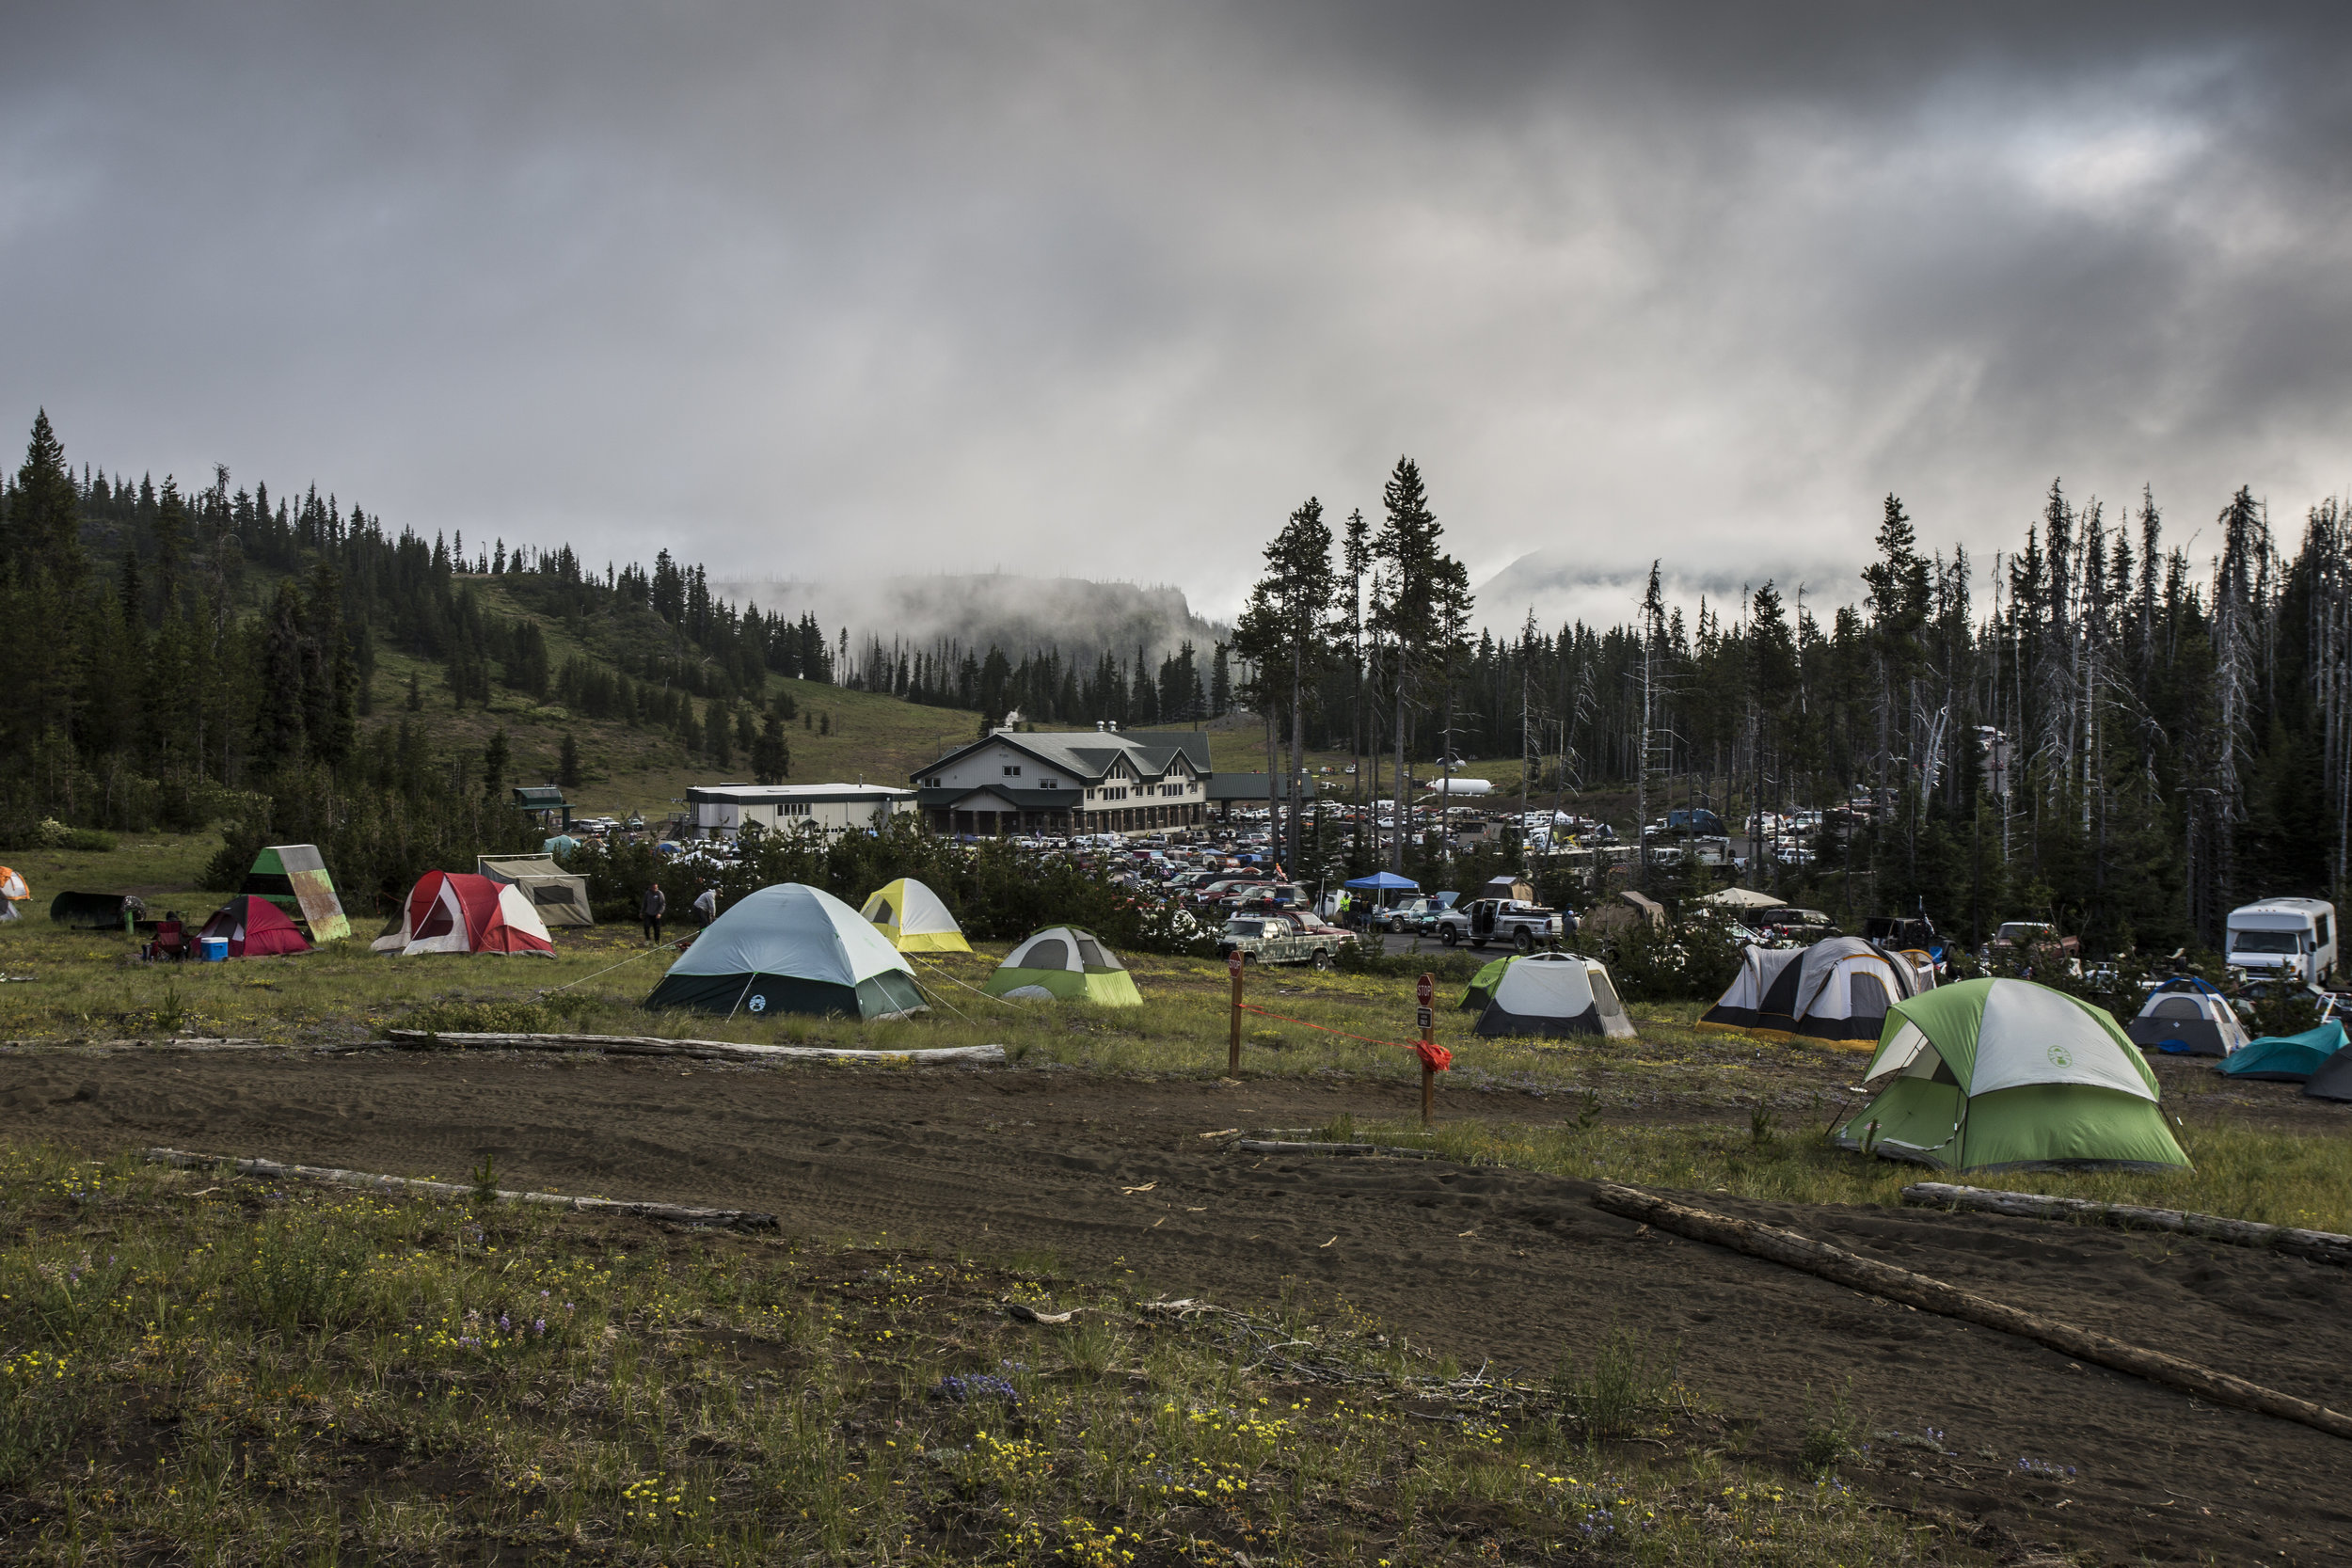 Camp the following morning, before everyone recovered from the events of the previous 24 hours